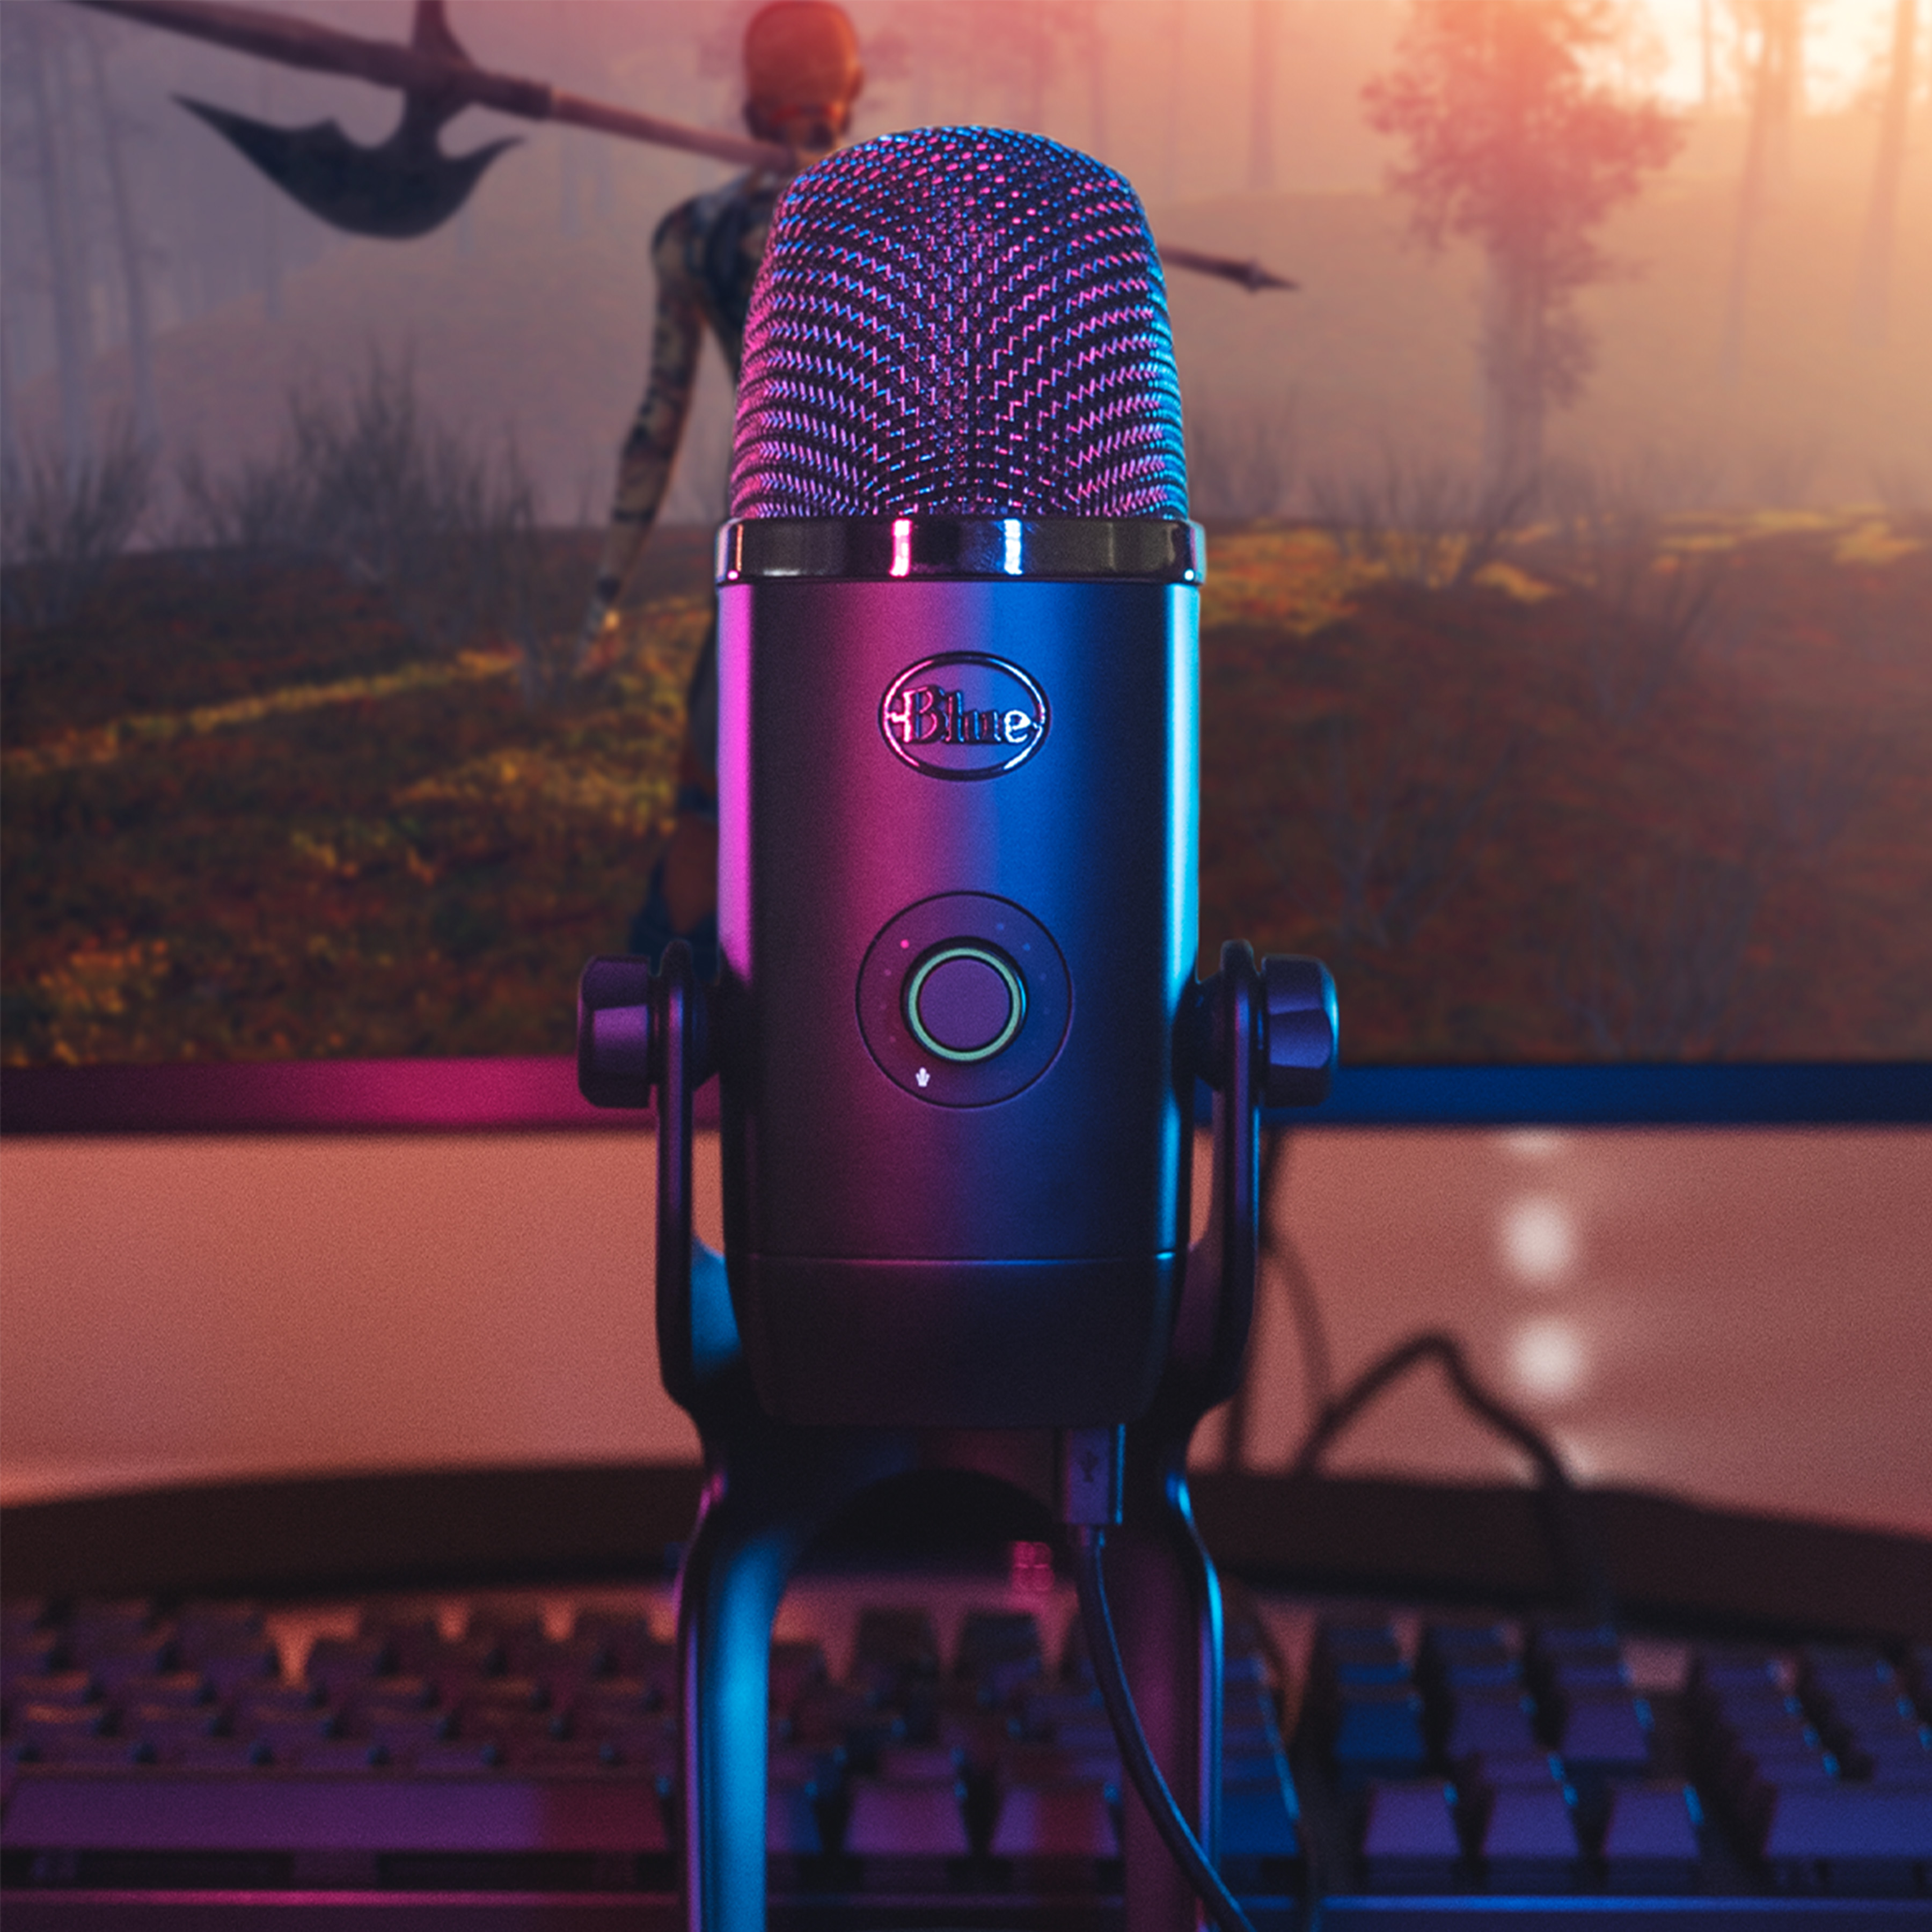 Blue Yeti X is a pro USB microphone for vlogging, gaming